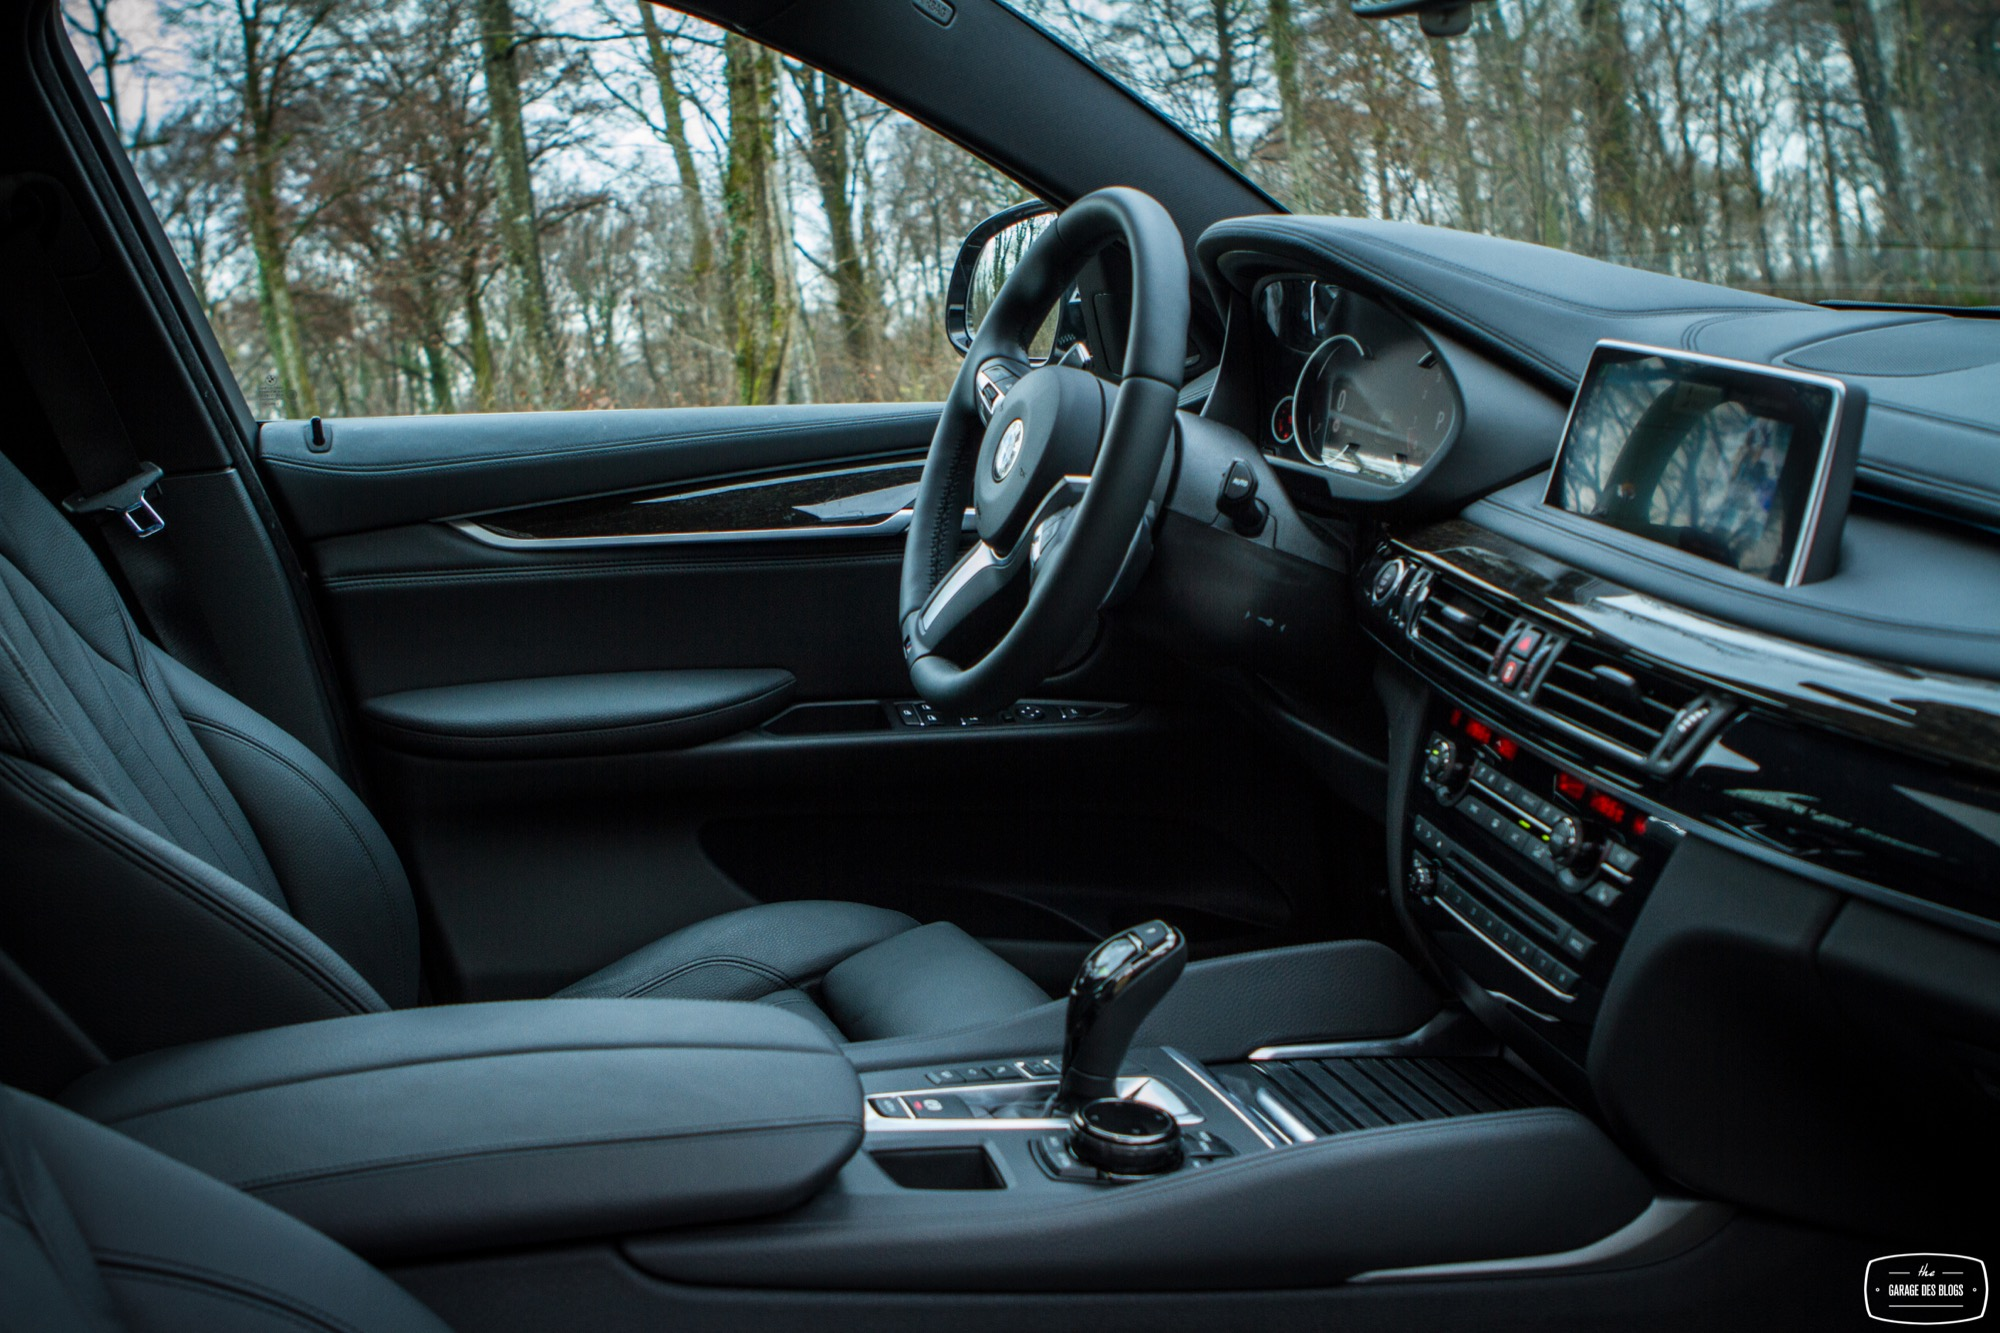 bmw x6 50i xdrive interieur 11 le blog de viinz. Black Bedroom Furniture Sets. Home Design Ideas